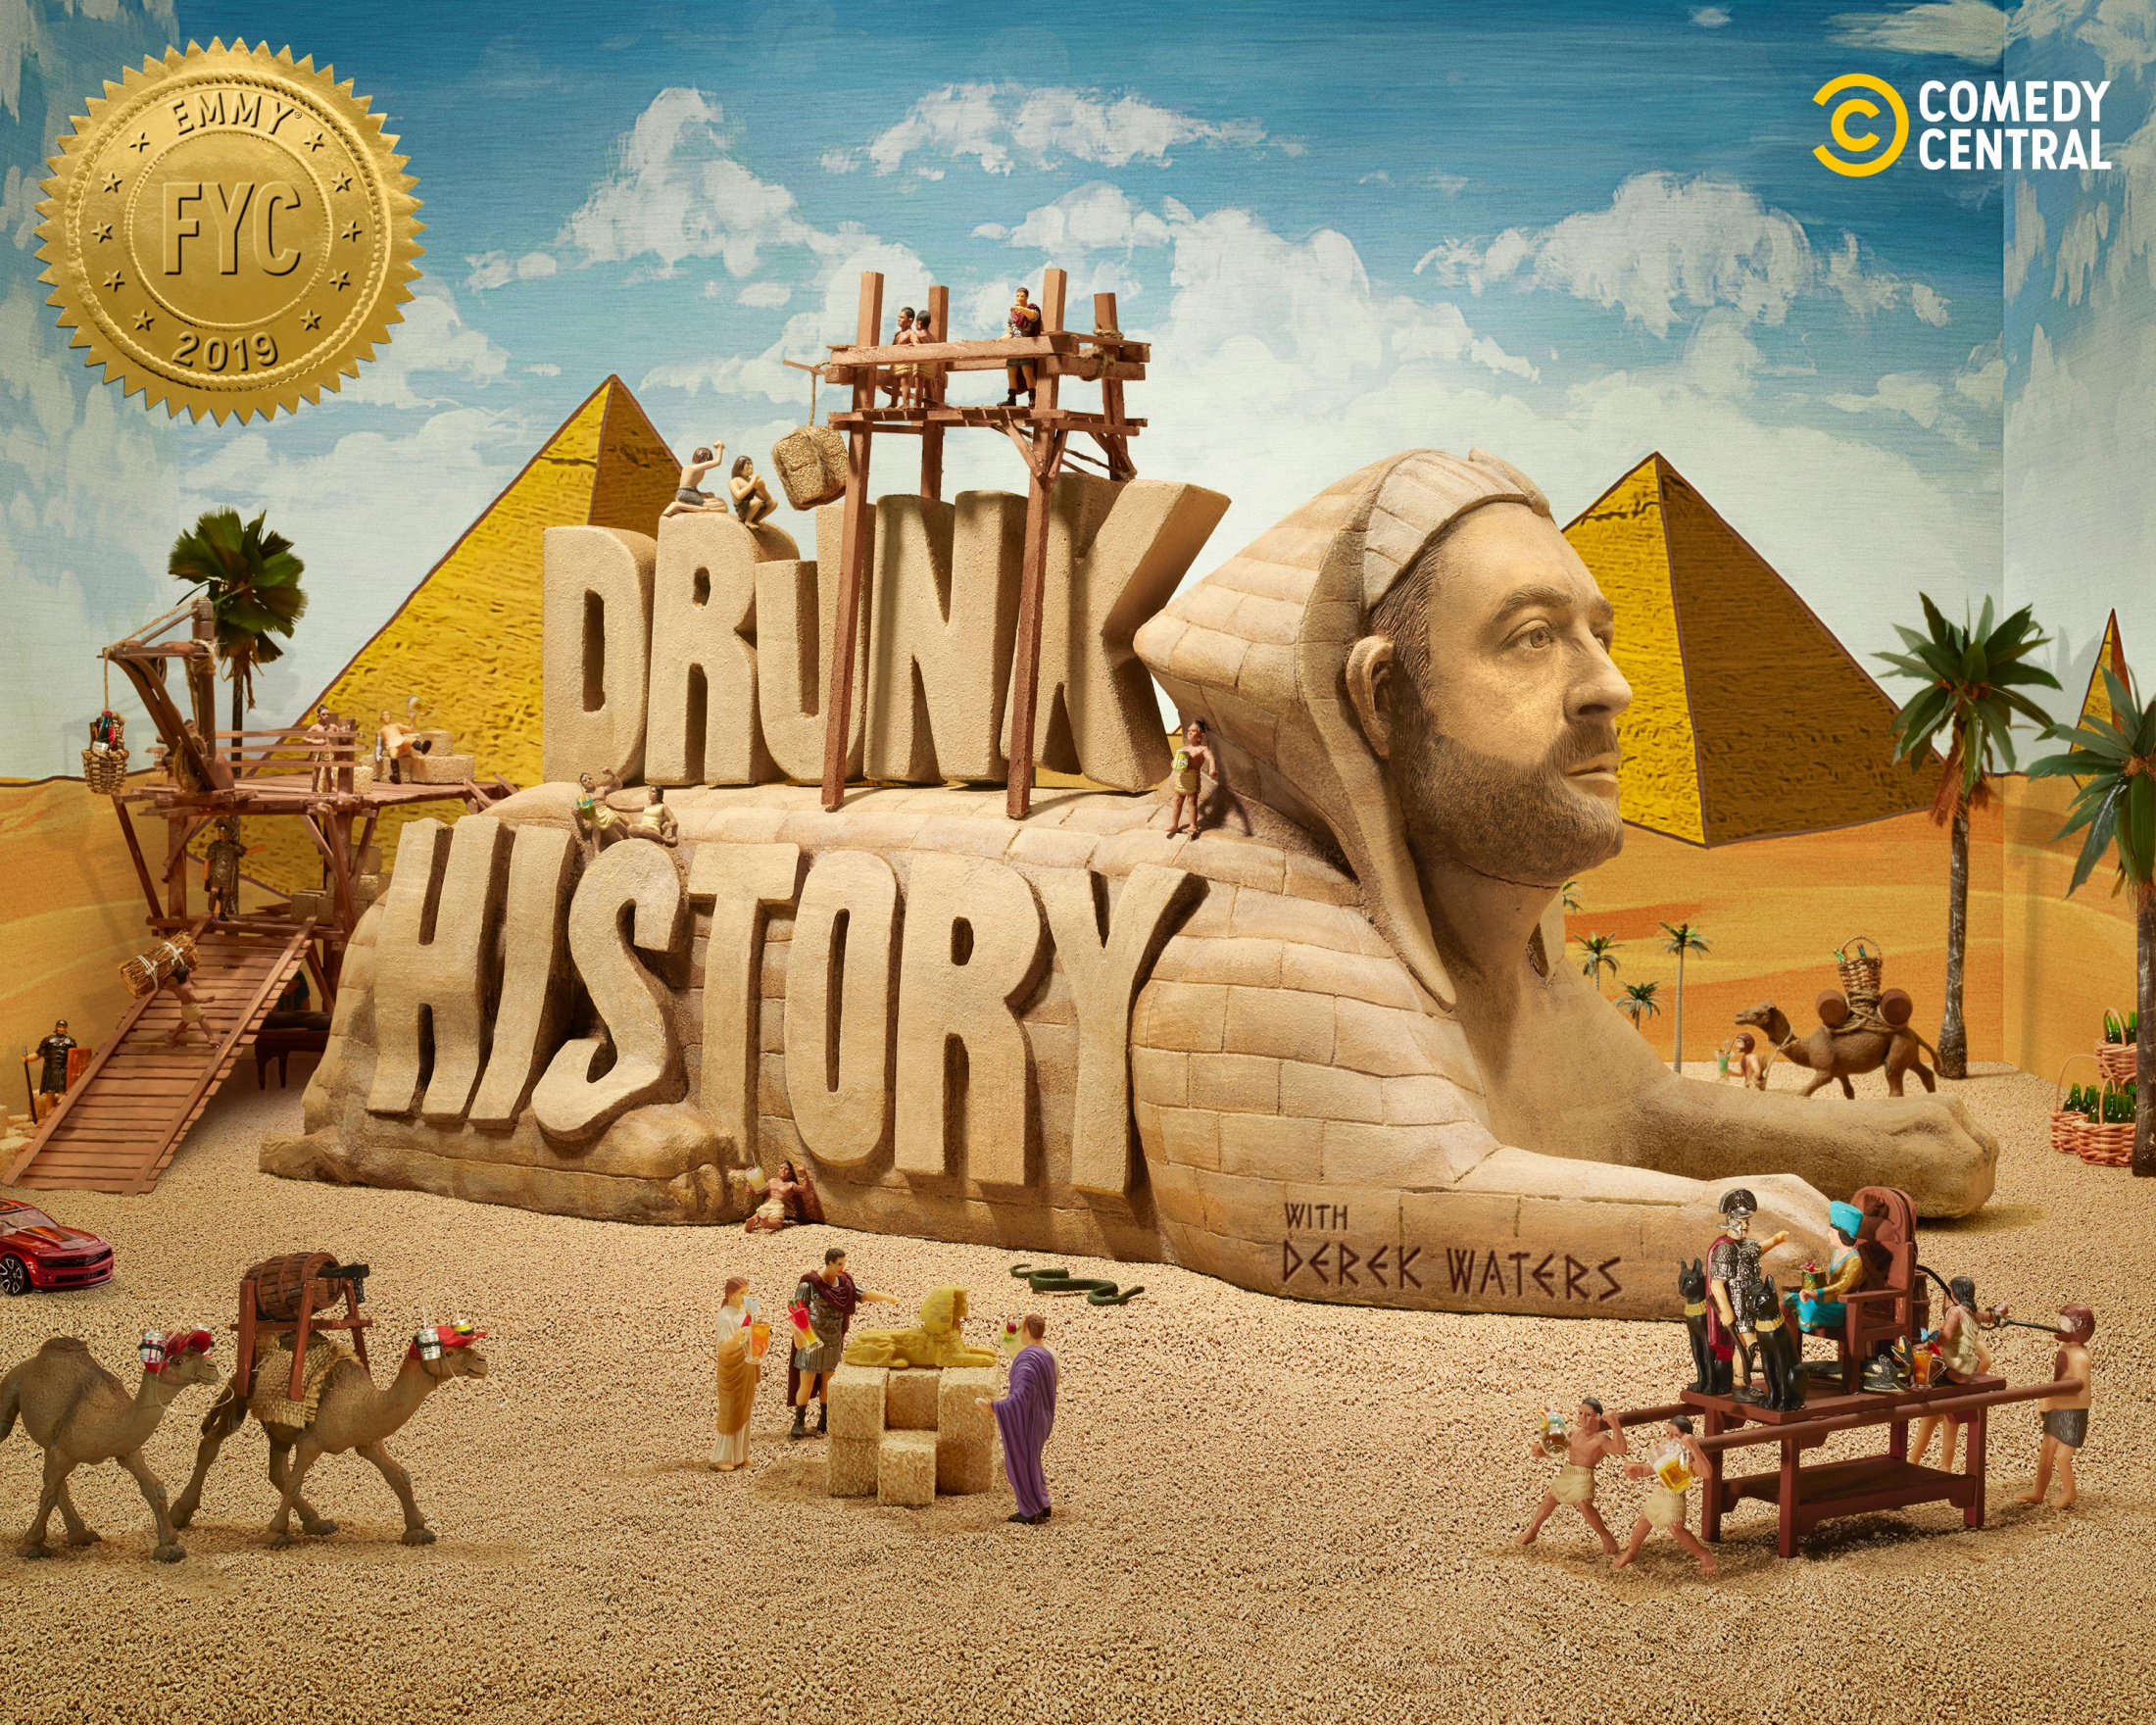 Thumbnail for Drunk History: FYC Beer Mug